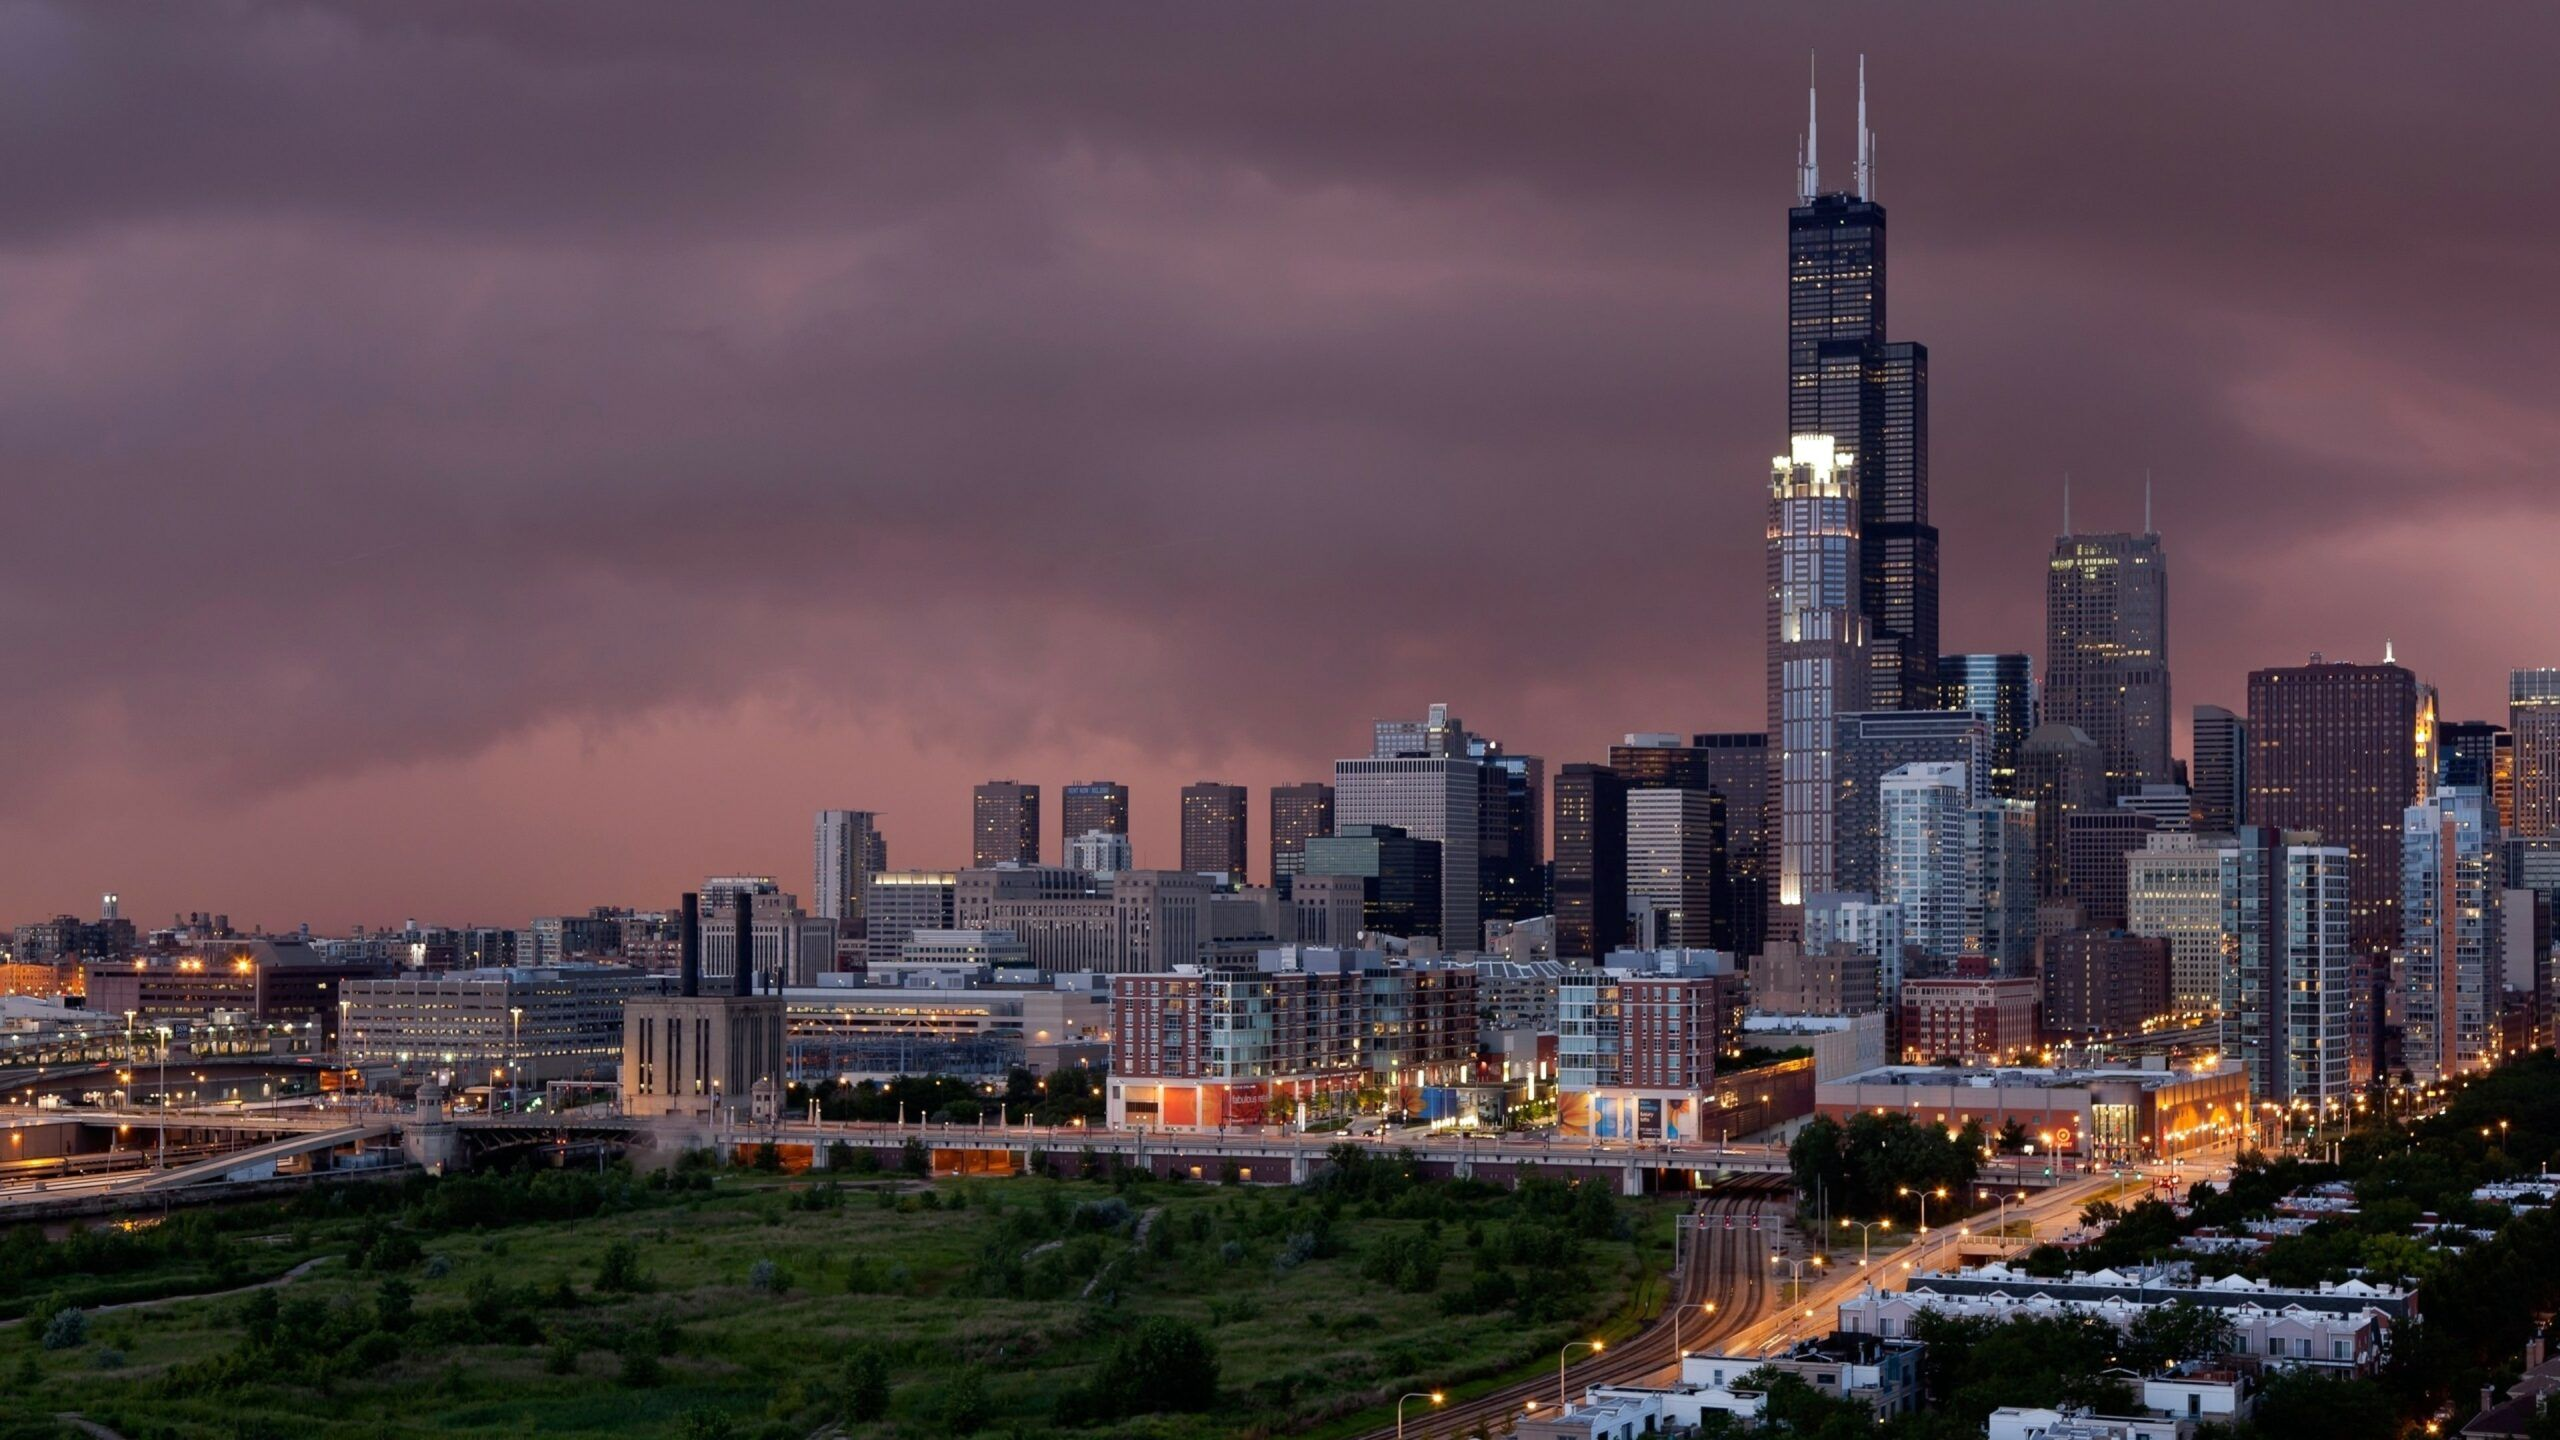 Chicago Marina Towers 4k Wallpaper In 2020 Chicago Wallpaper Skyline Chicago Pictures